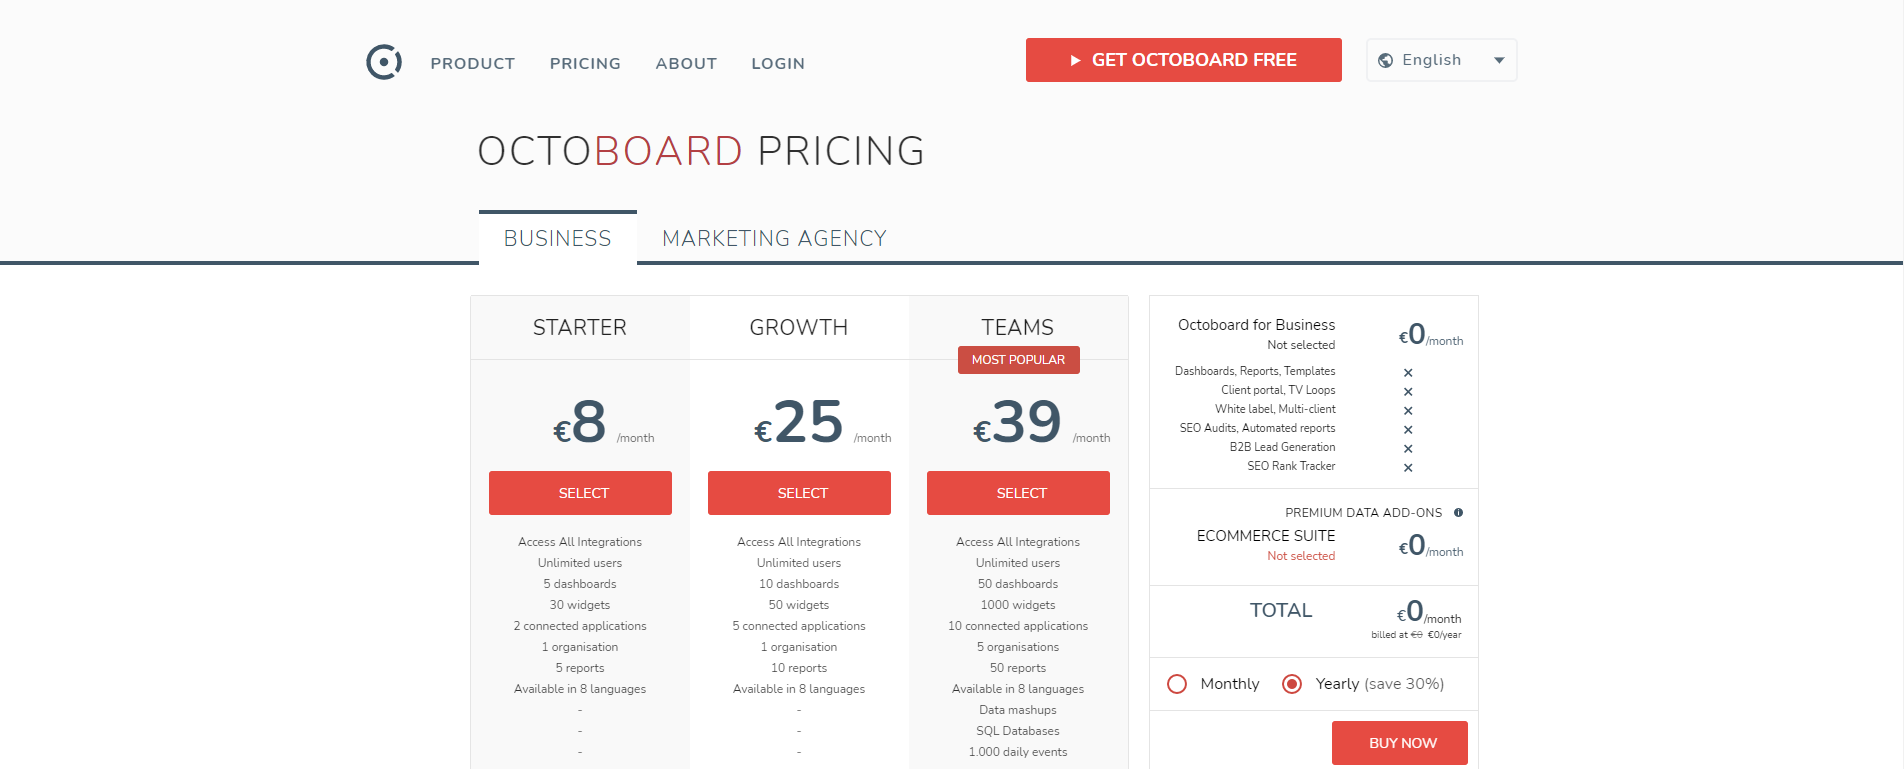 octoboard pricing for business